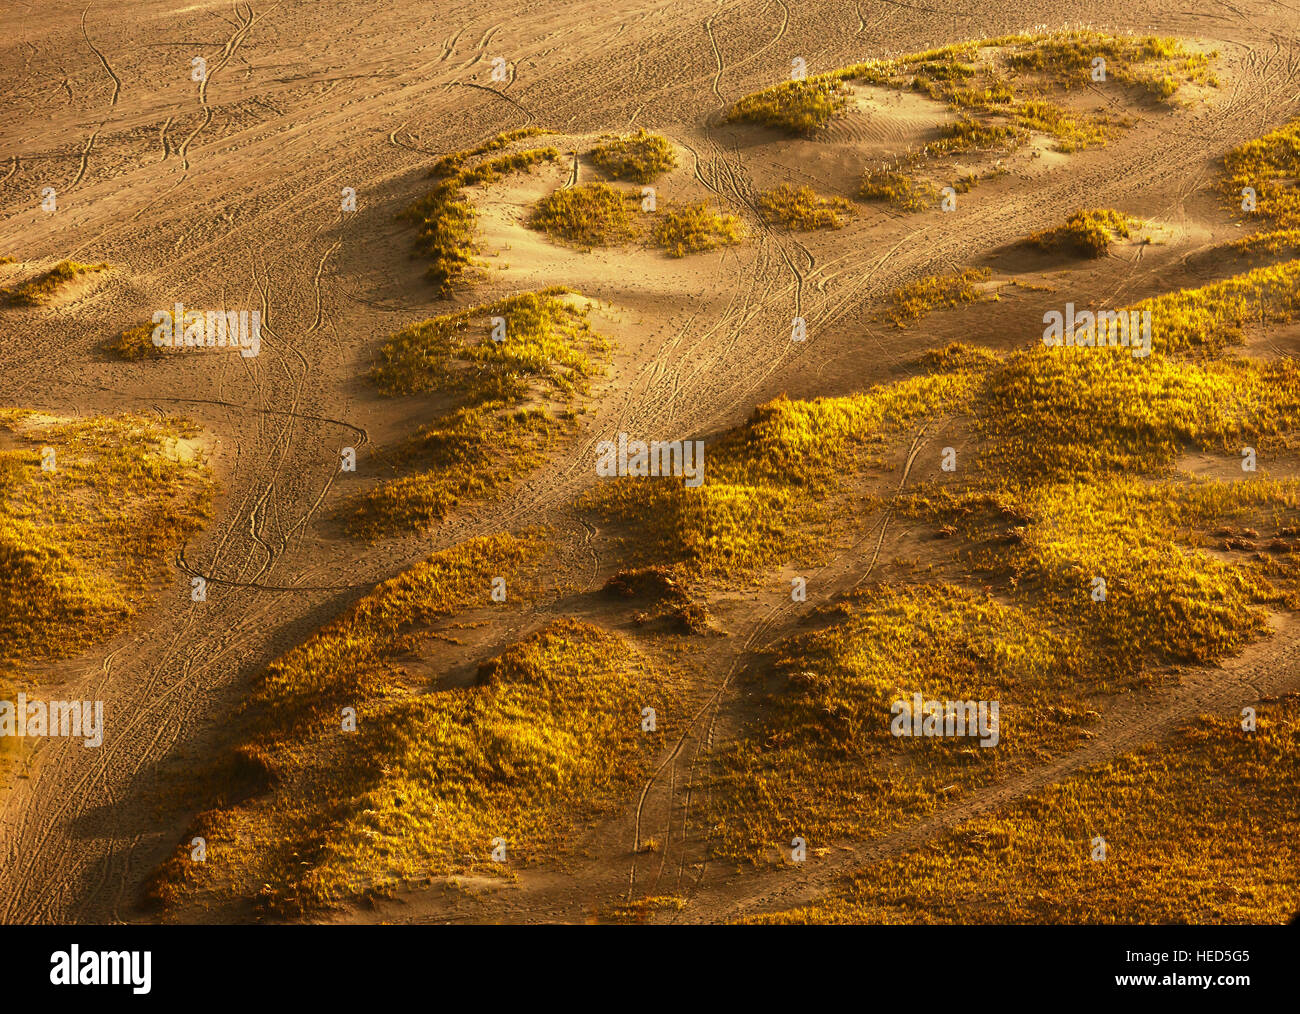 Motorcycle wheel trace in the desert and meadow under sunset light - Stock Image